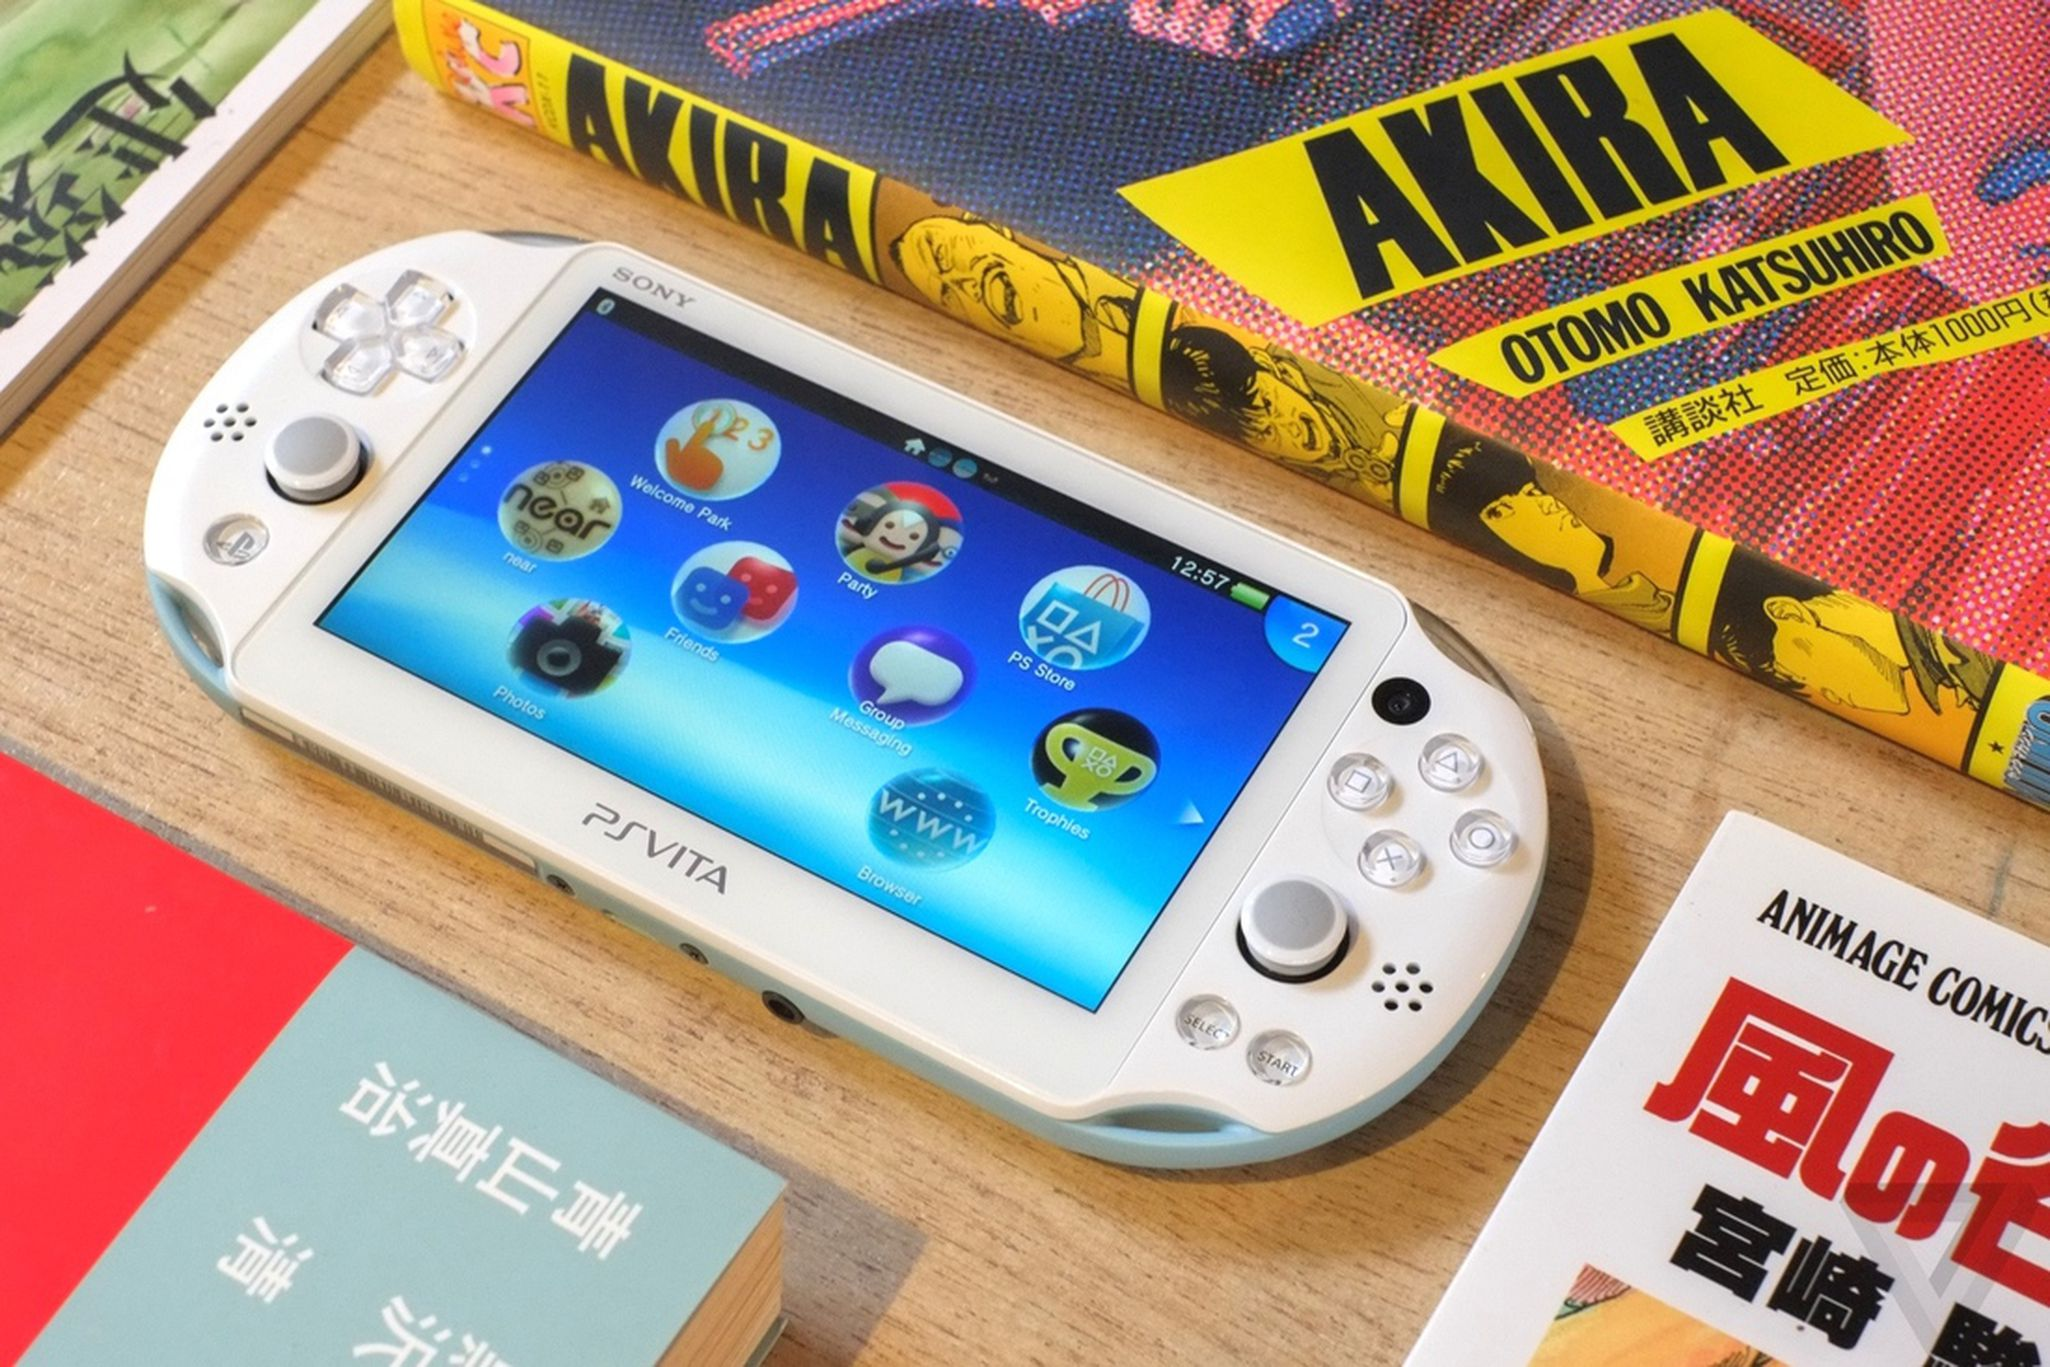 PS Vita review (2013) | The Verge